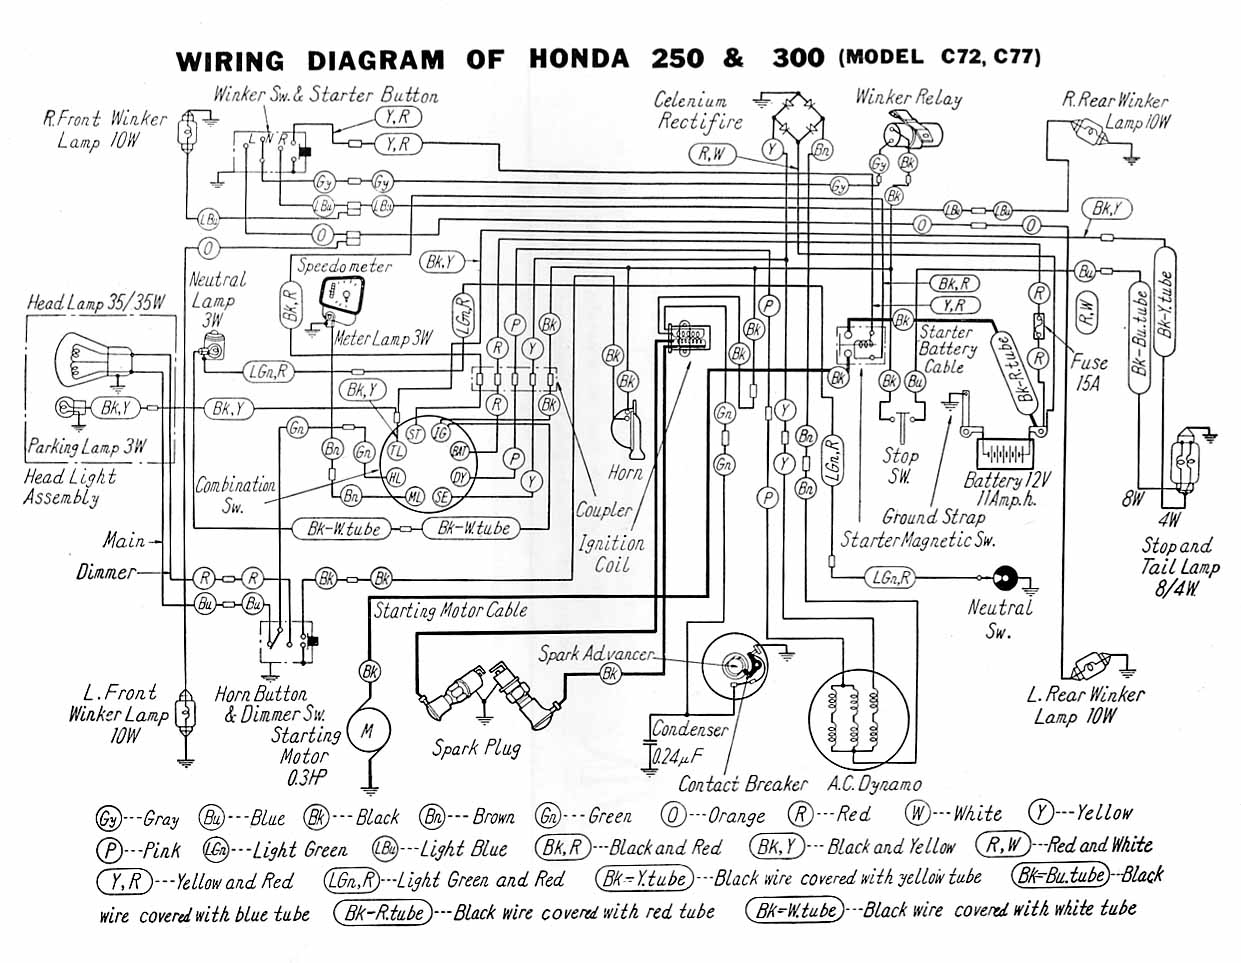 Honda C72 C77 Wiring Diagram index of images 3 3e honda vtr 250 wiring diagram at suagrazia.org